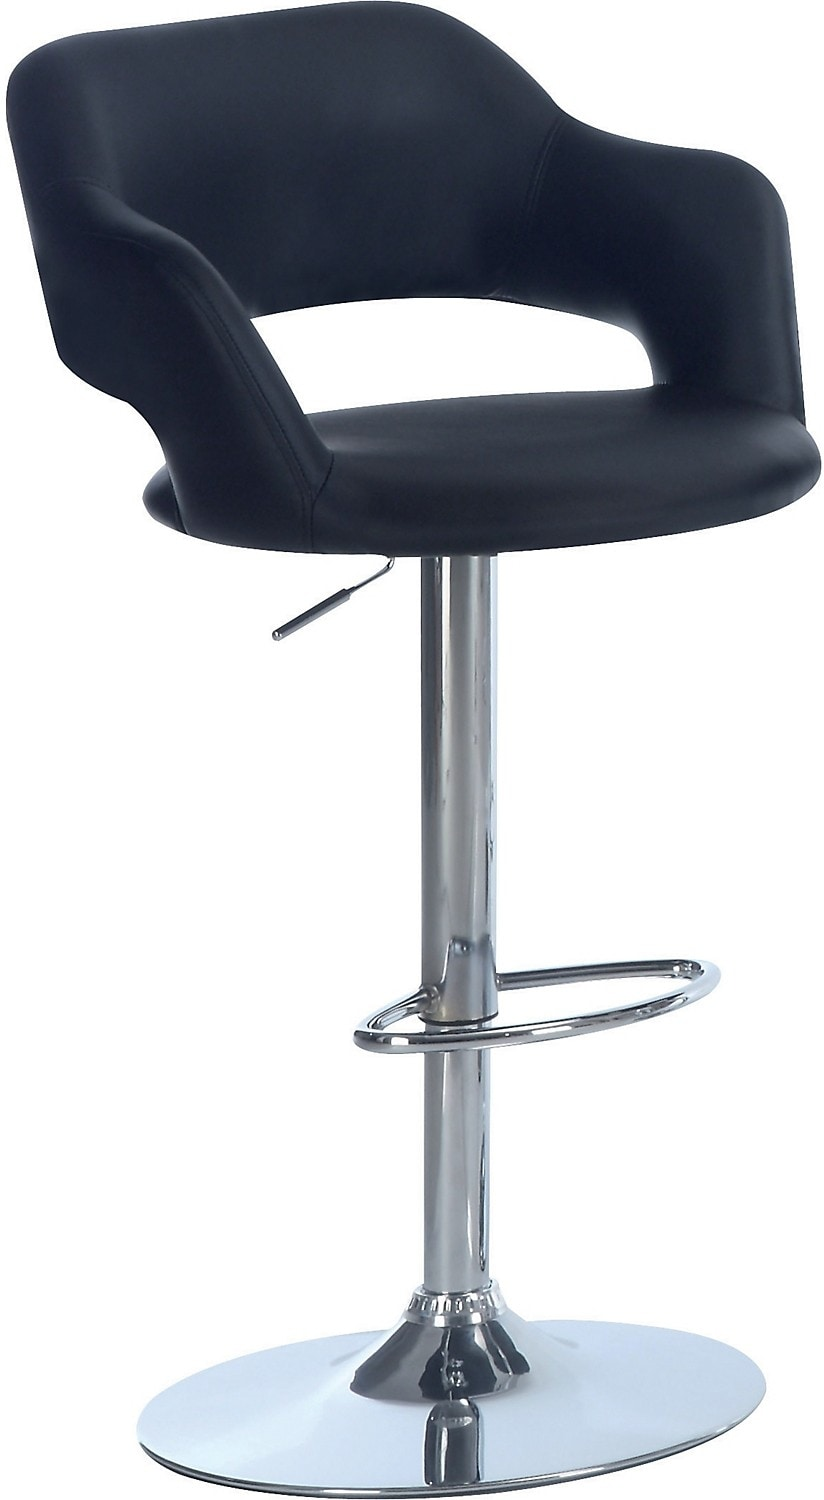 Accent and Occasional Furniture - Black Hydraulic Bar Stool